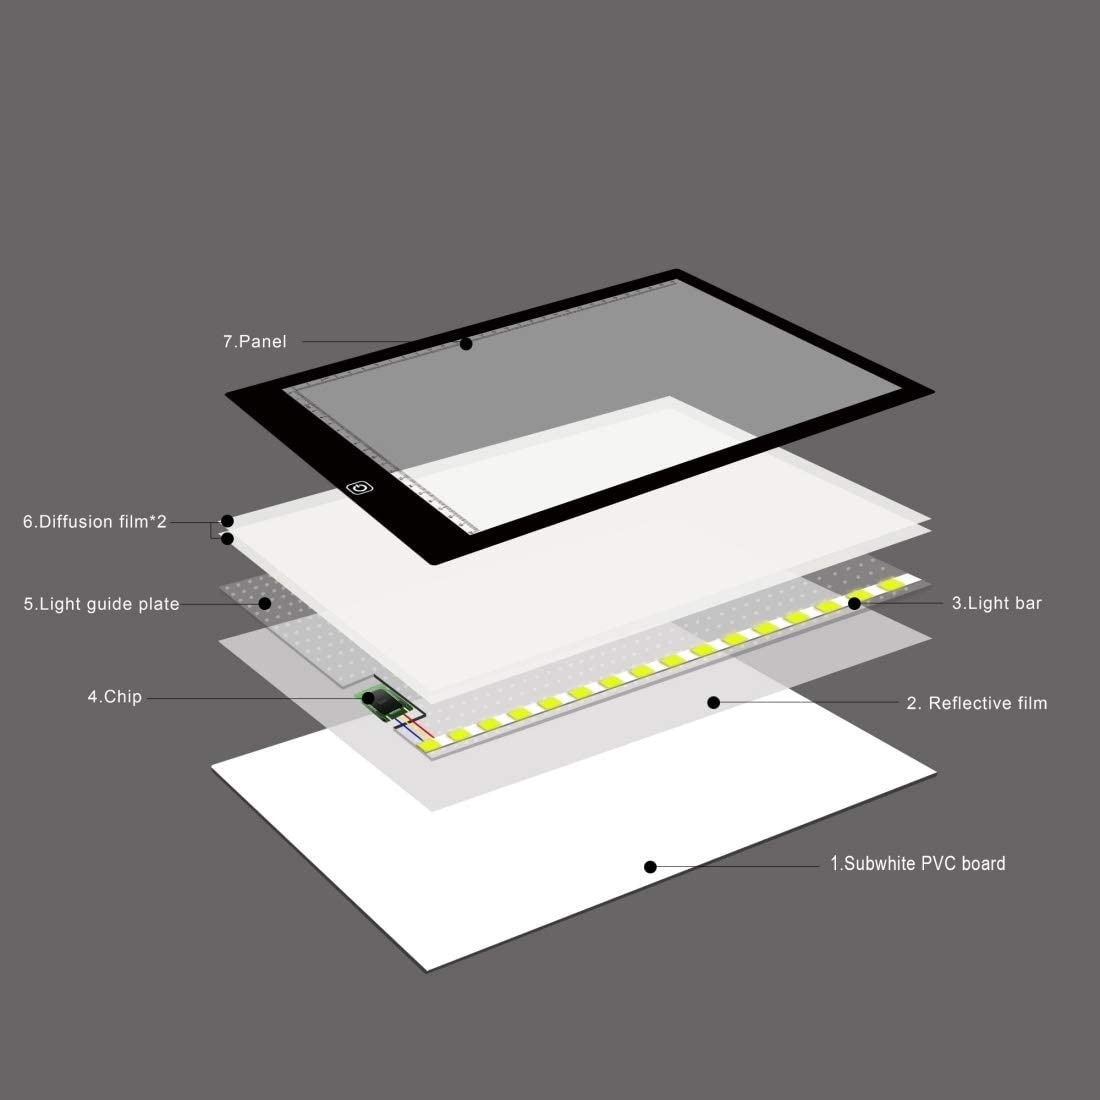 Graphic Drawing Tablet Digital Drawing Board A4 Size 5W 5V LED Three Level of Brightness Dimmable Acrylic Copy Boards for Anime Sketch Drawing Sketchpad Size:220x330x5mm with USB Cable /& Plug